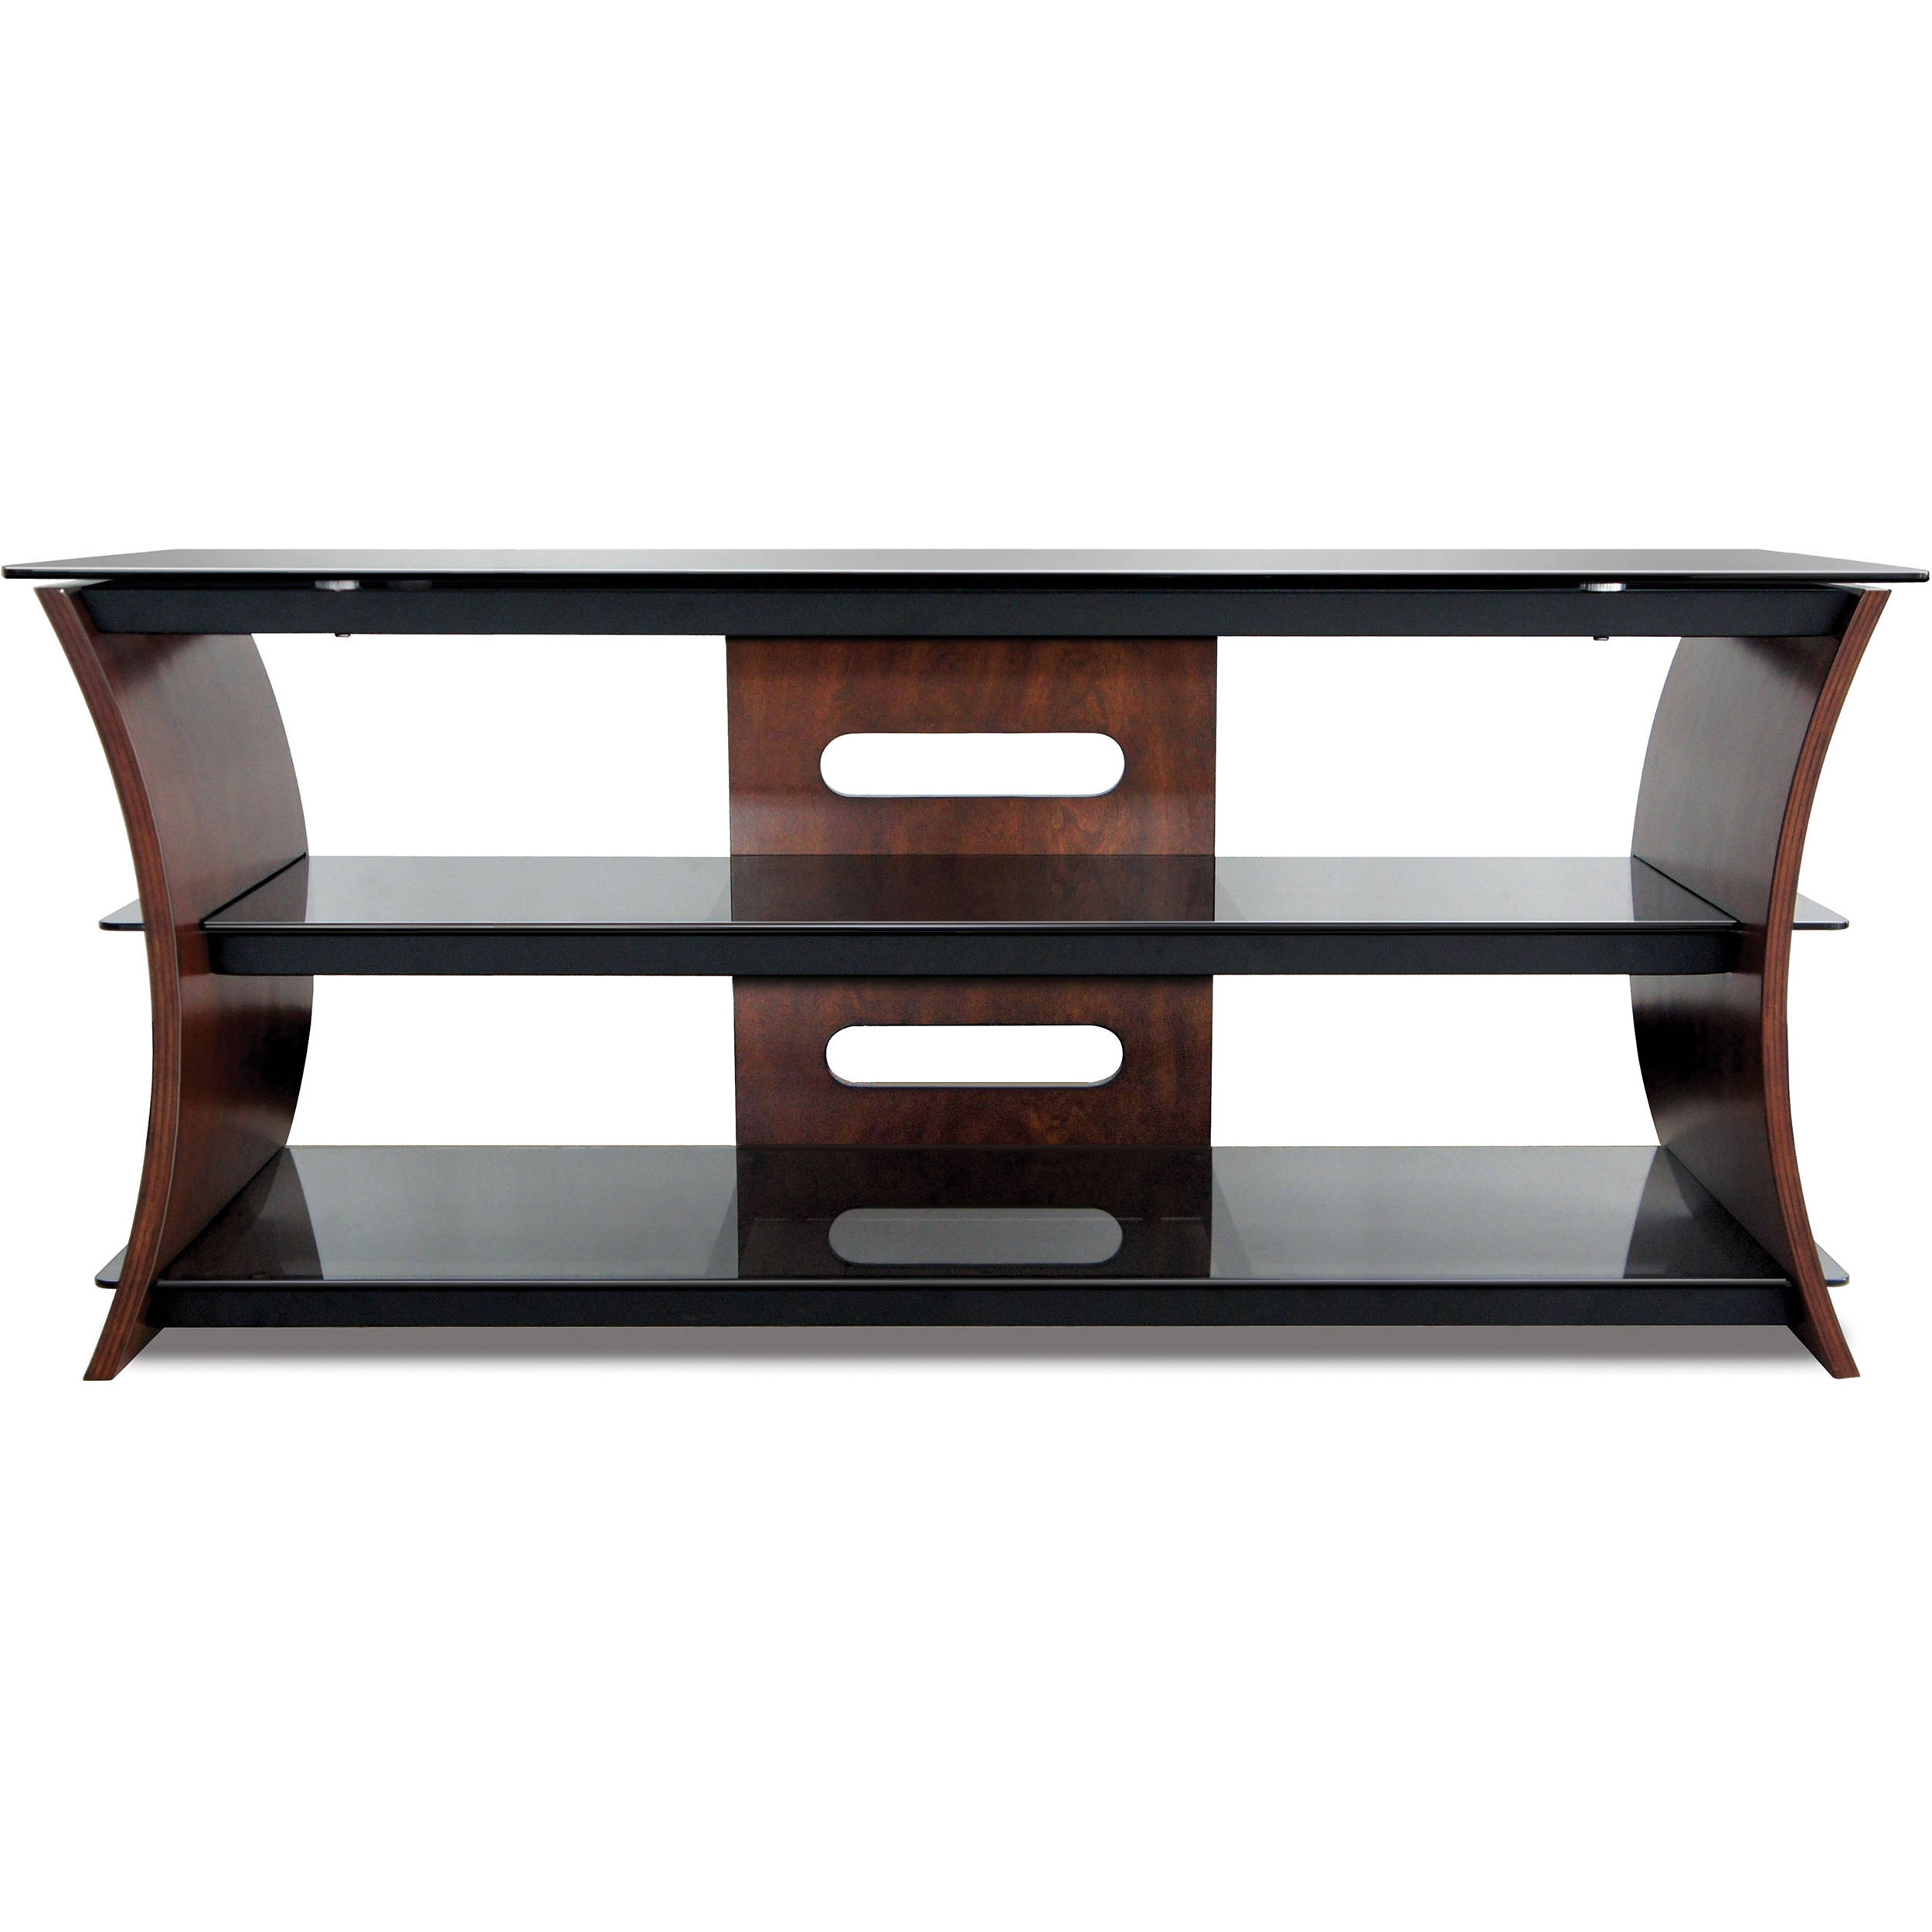 Fantastic Cw356 Curved Wood Tv Stand Interior Design Ideas Tzicisoteloinfo